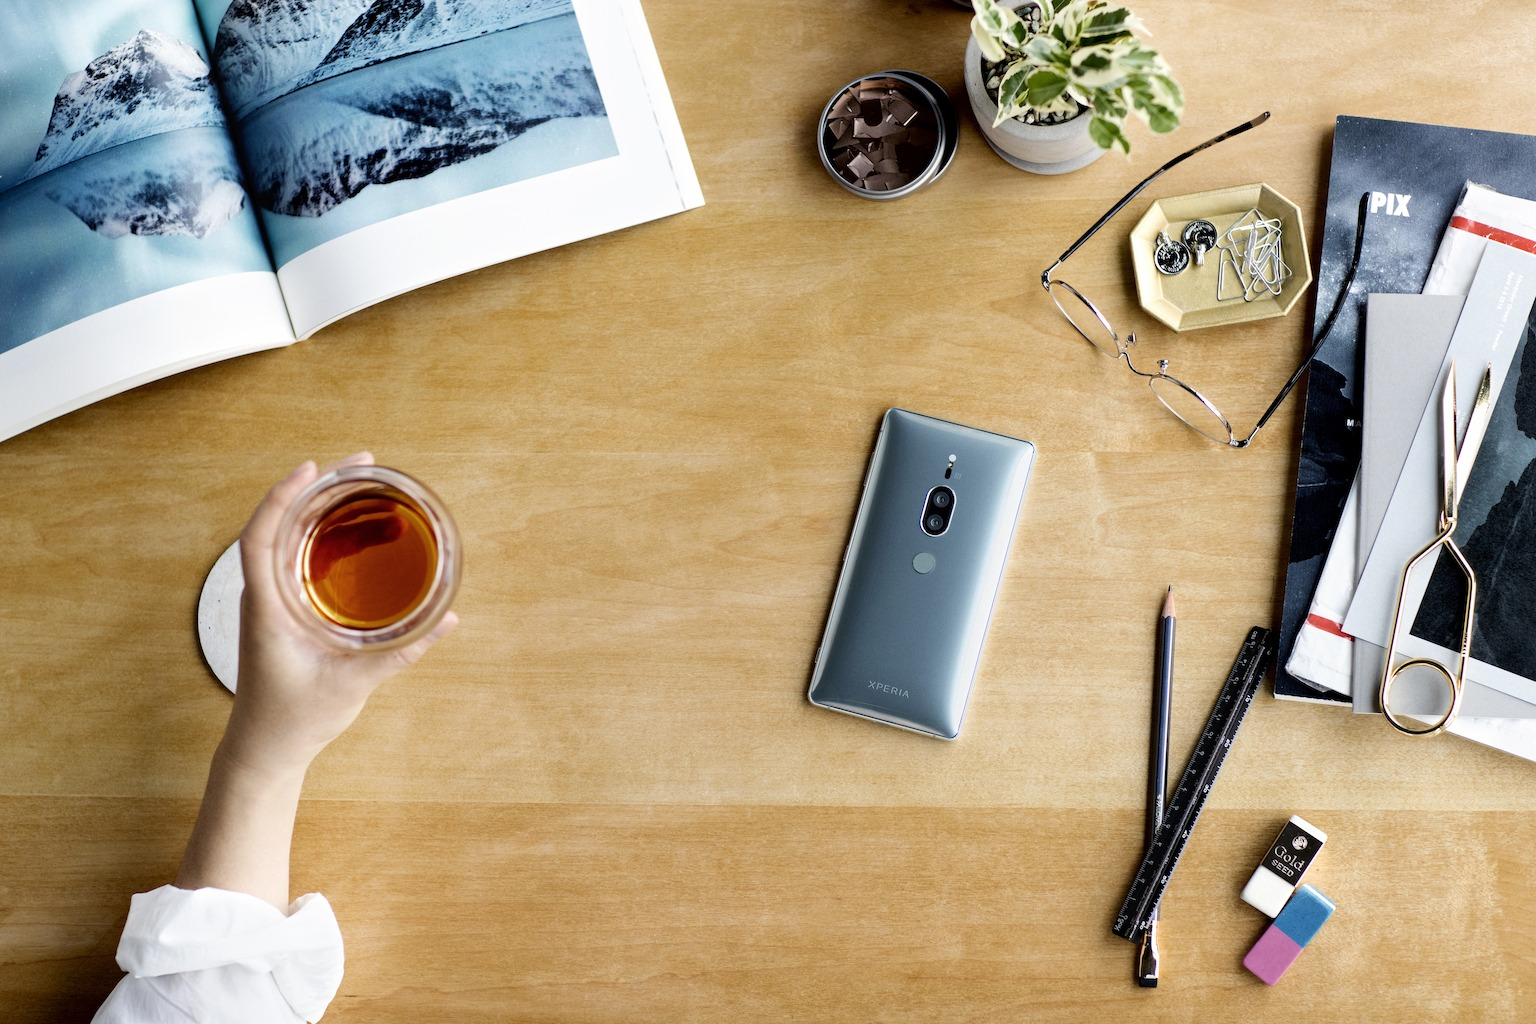 Sony Xperia XZ2 Premium has dual cameras & 4K HDR 16:9 display 1